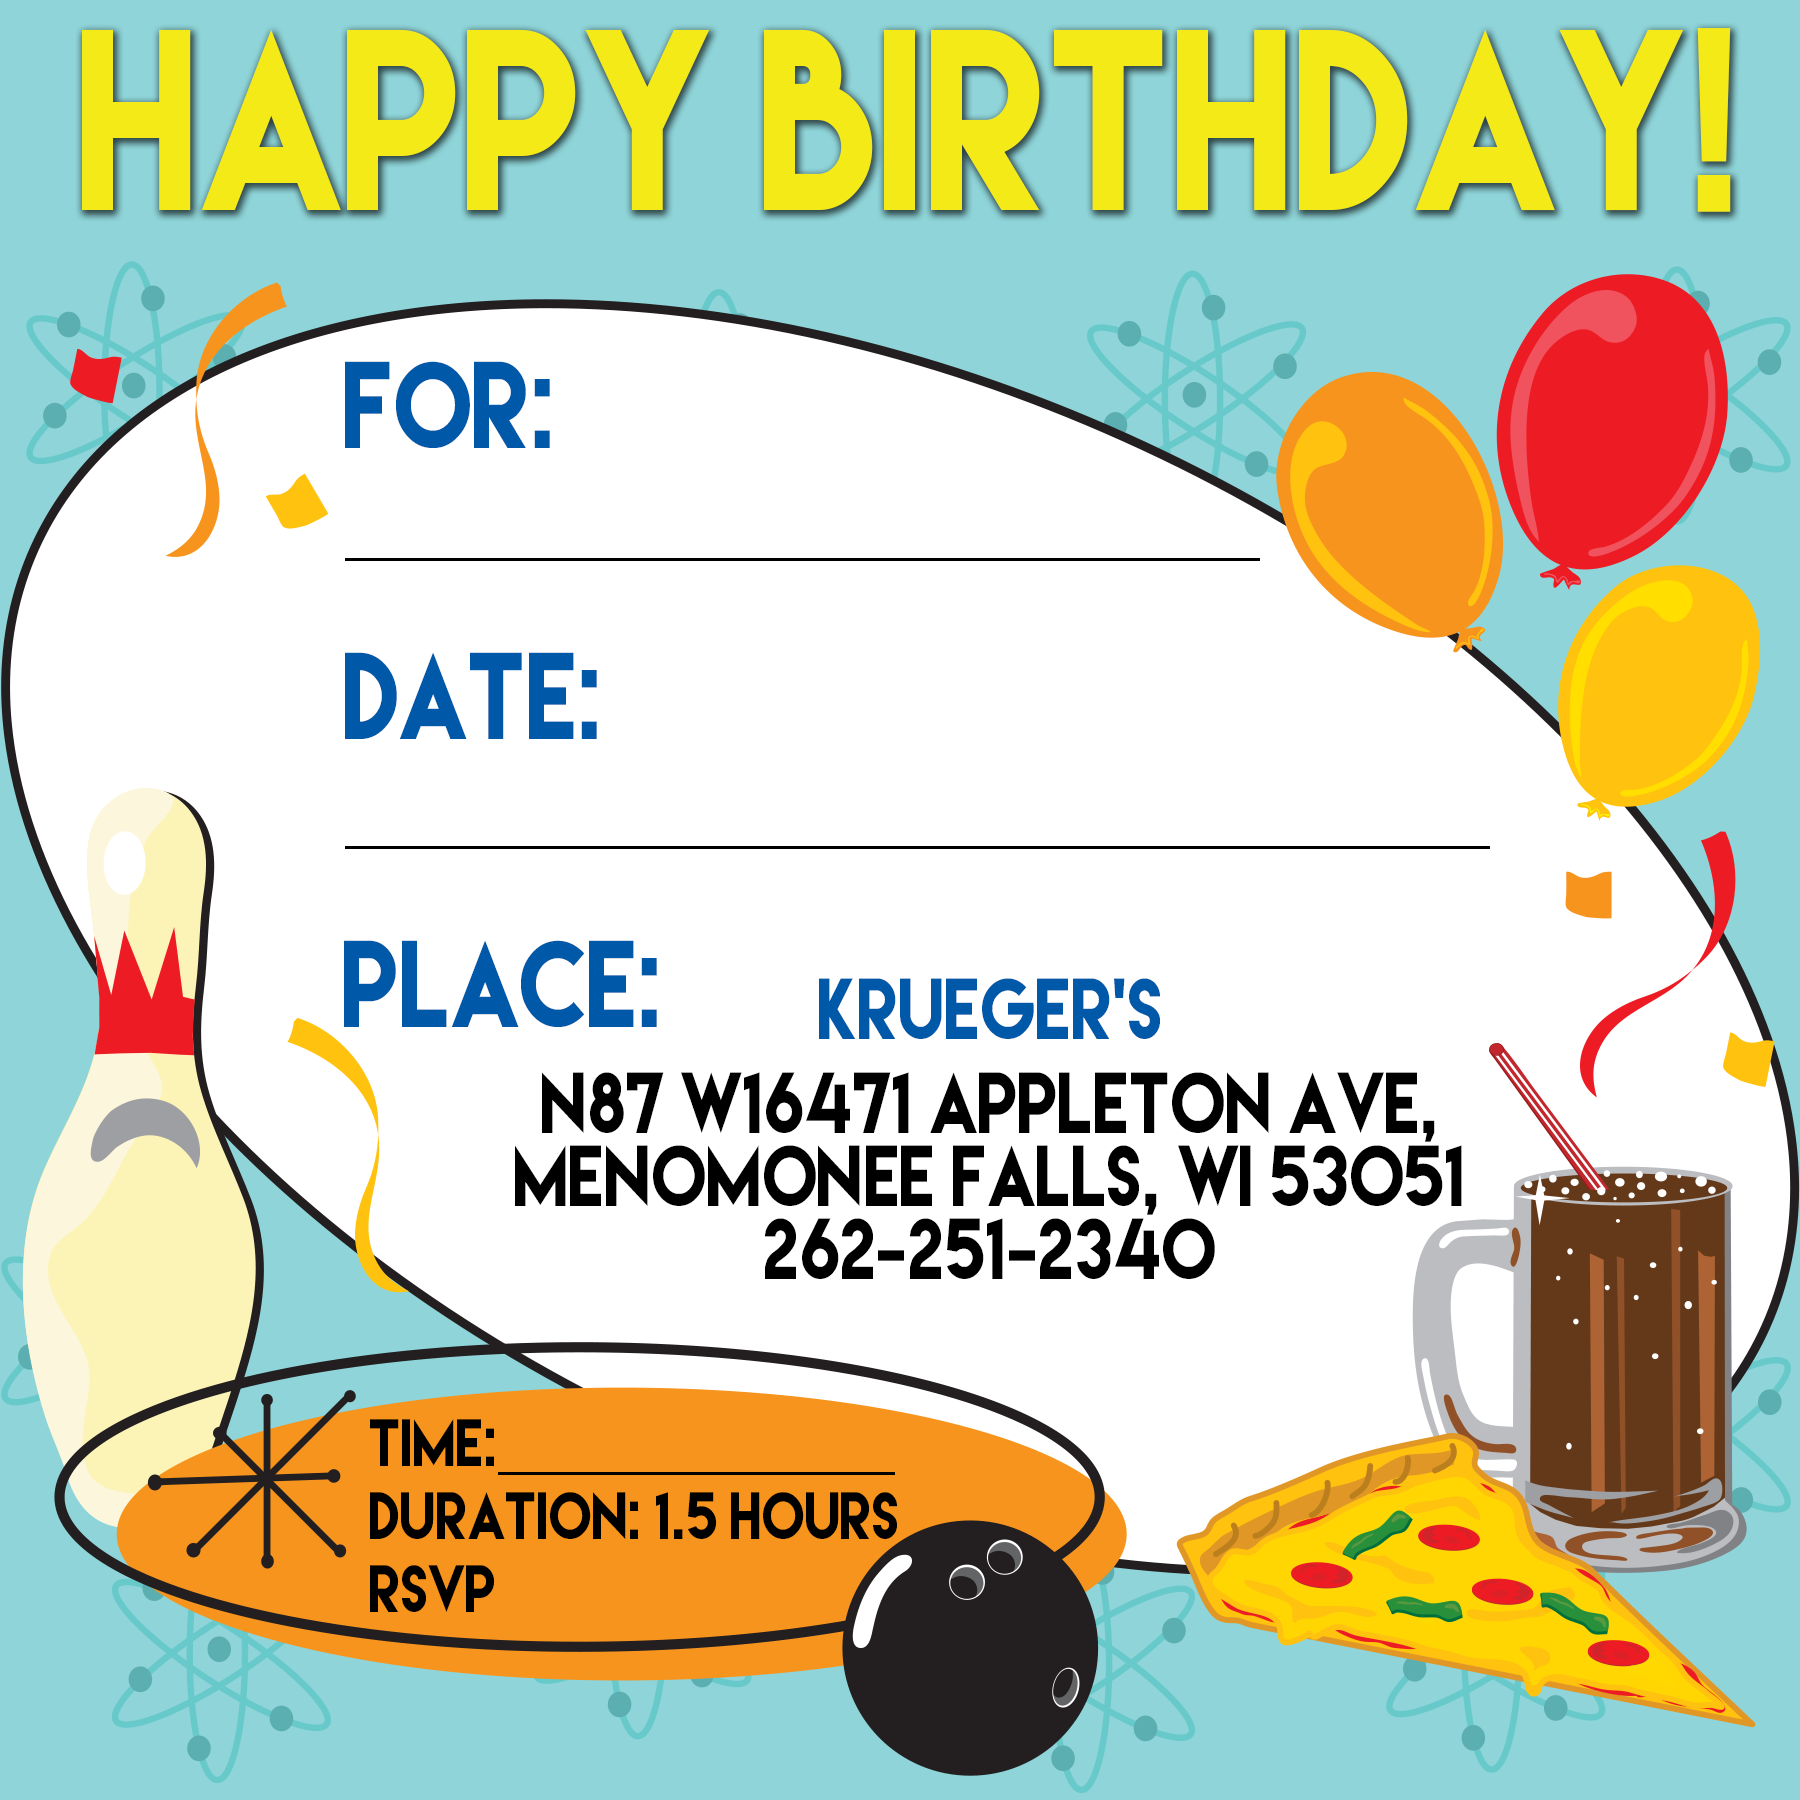 happy birthday! for: date: place: krueger's n87 w16471 appleton ave. menomonee falls, wi 53051 262-251-2340 time: duration: 1.5 hours rsvp